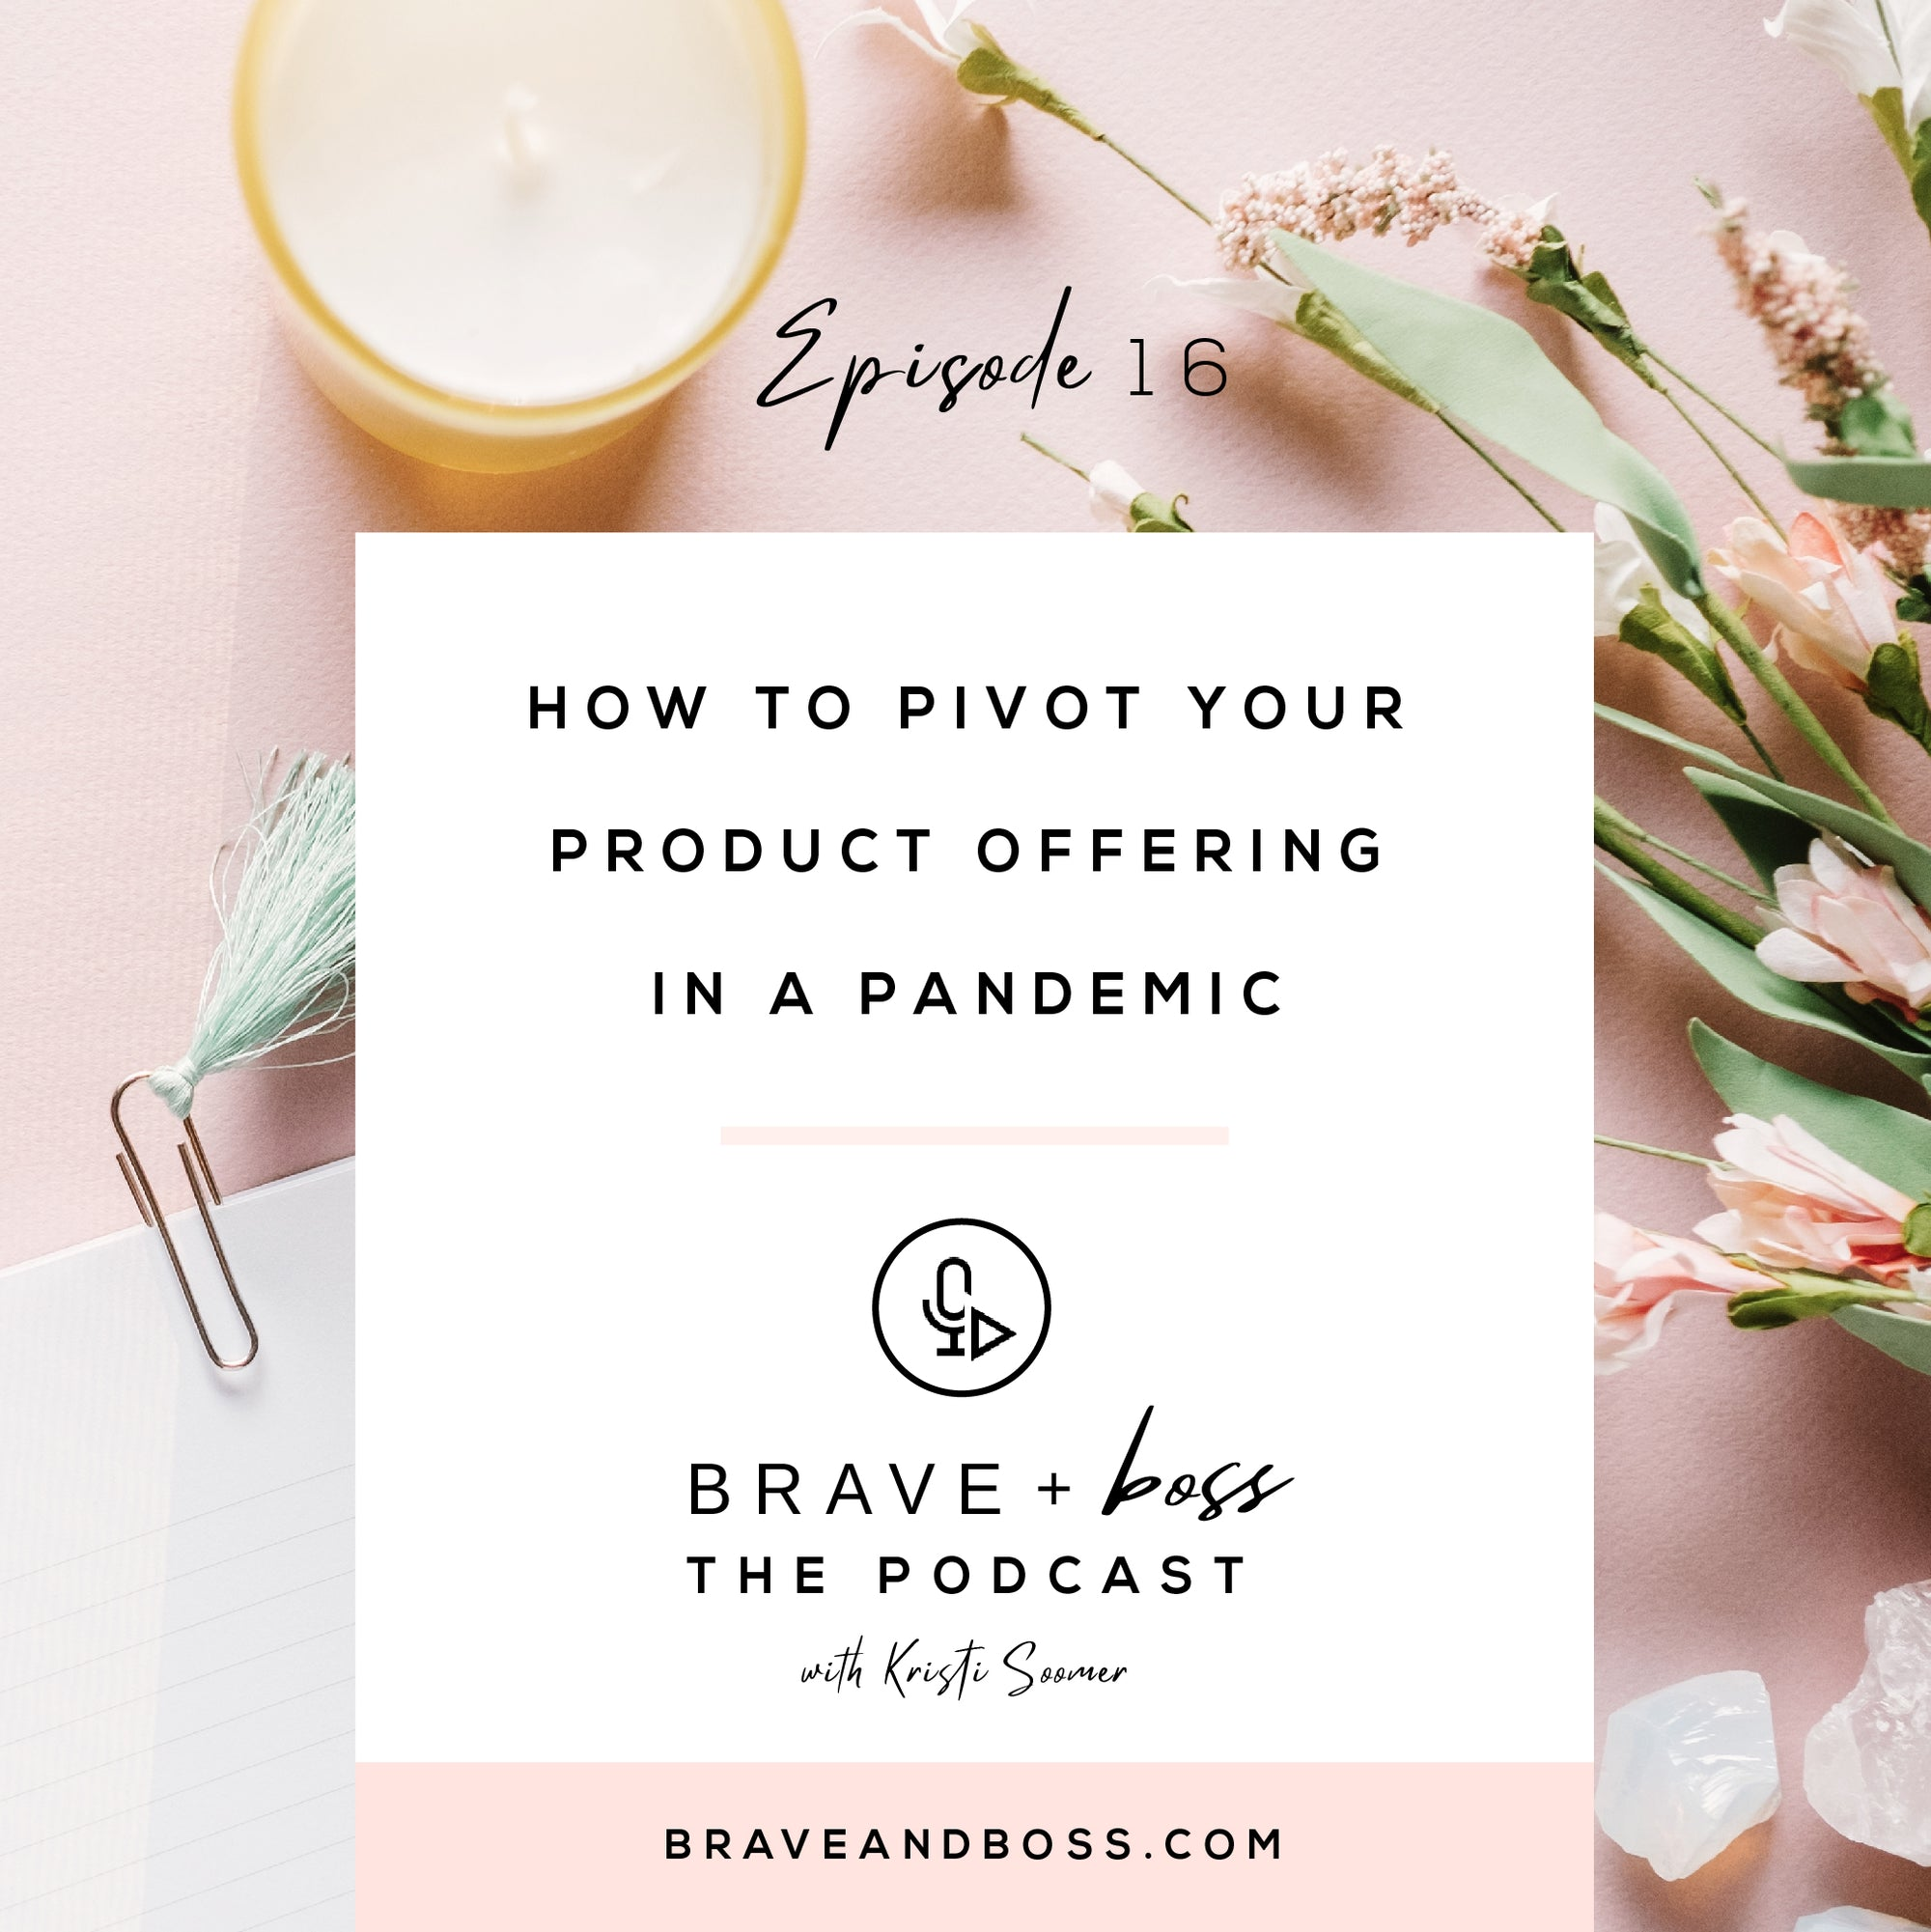 How to Pivot your Product Offering in a Pandemic